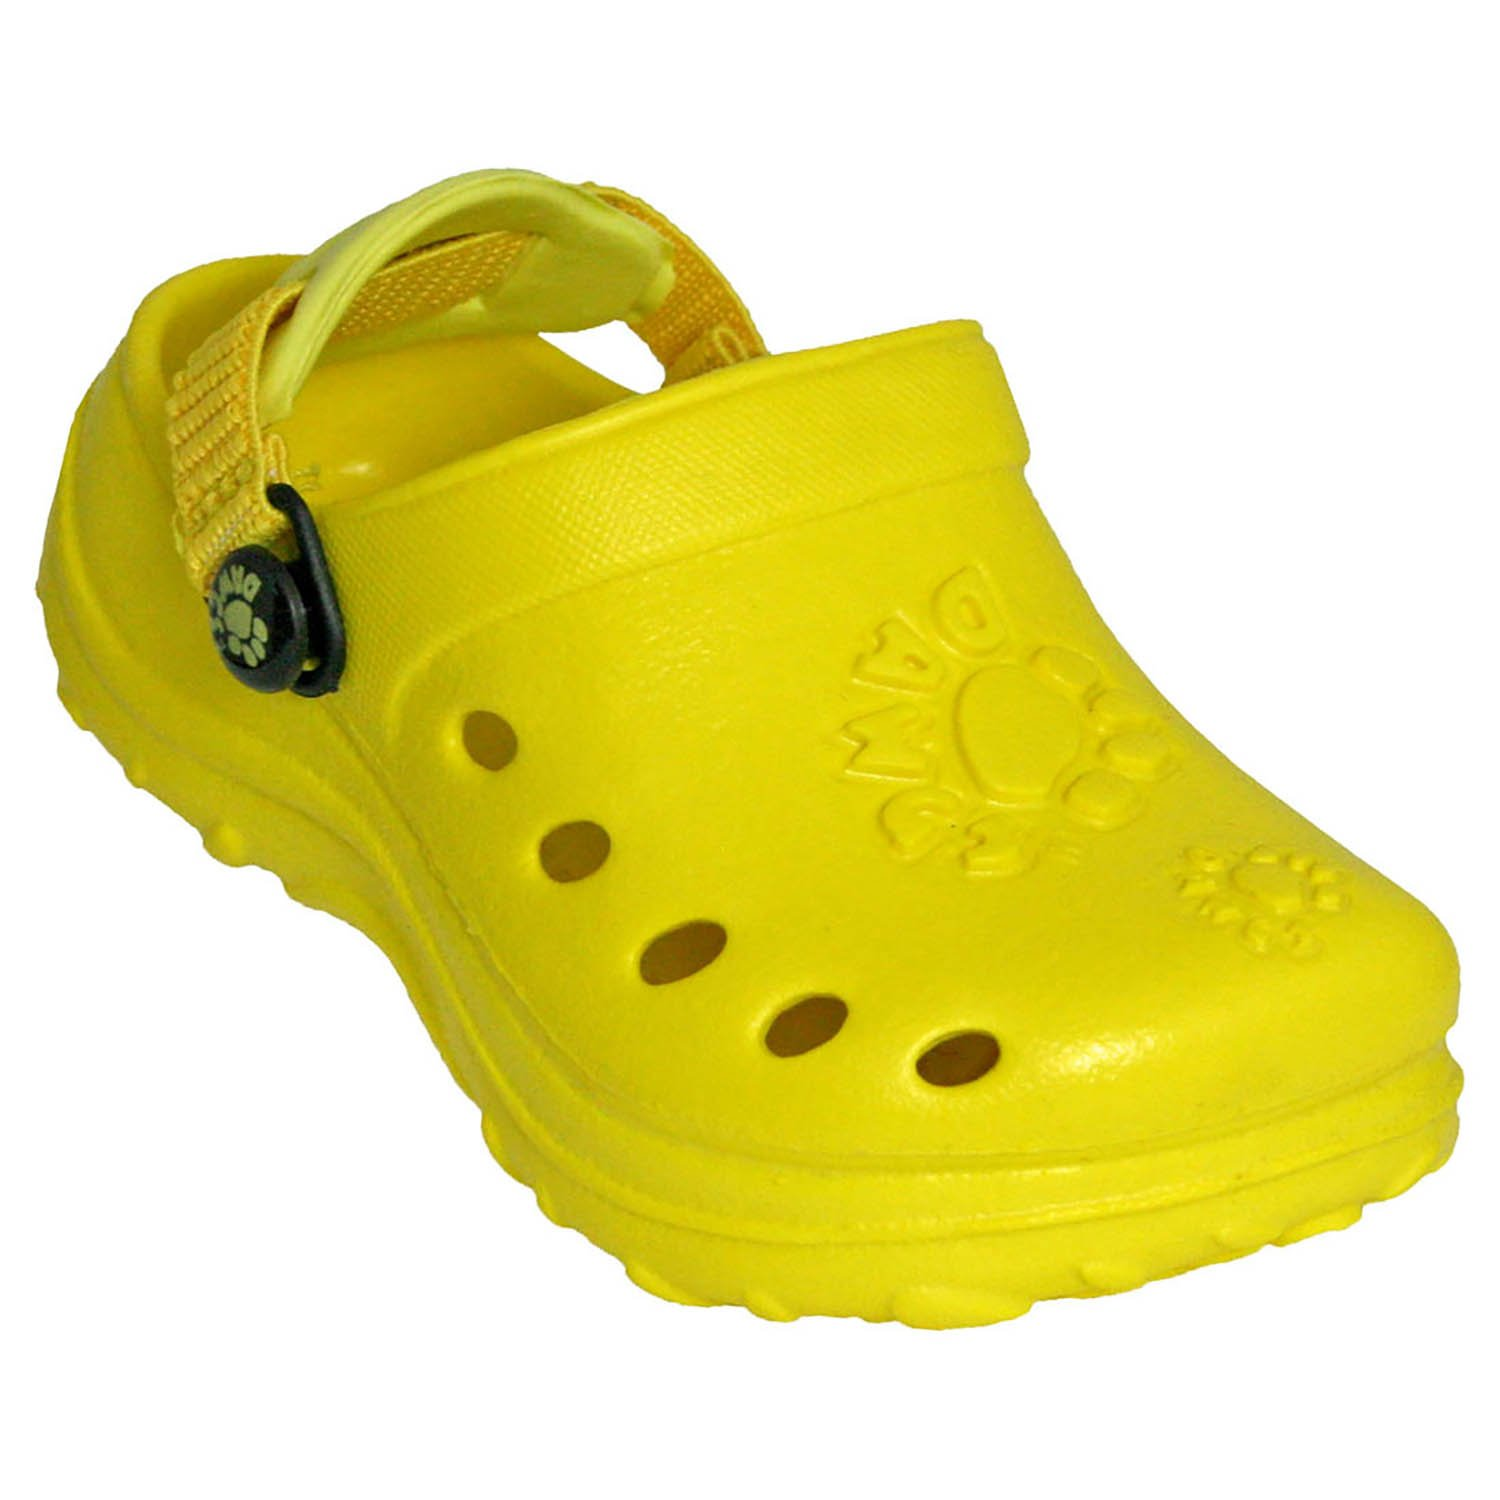 DAWGS Kids' Clogs Yellow Size 12 USA Dawgs Inc. DCLG.U.K.Yw.0012